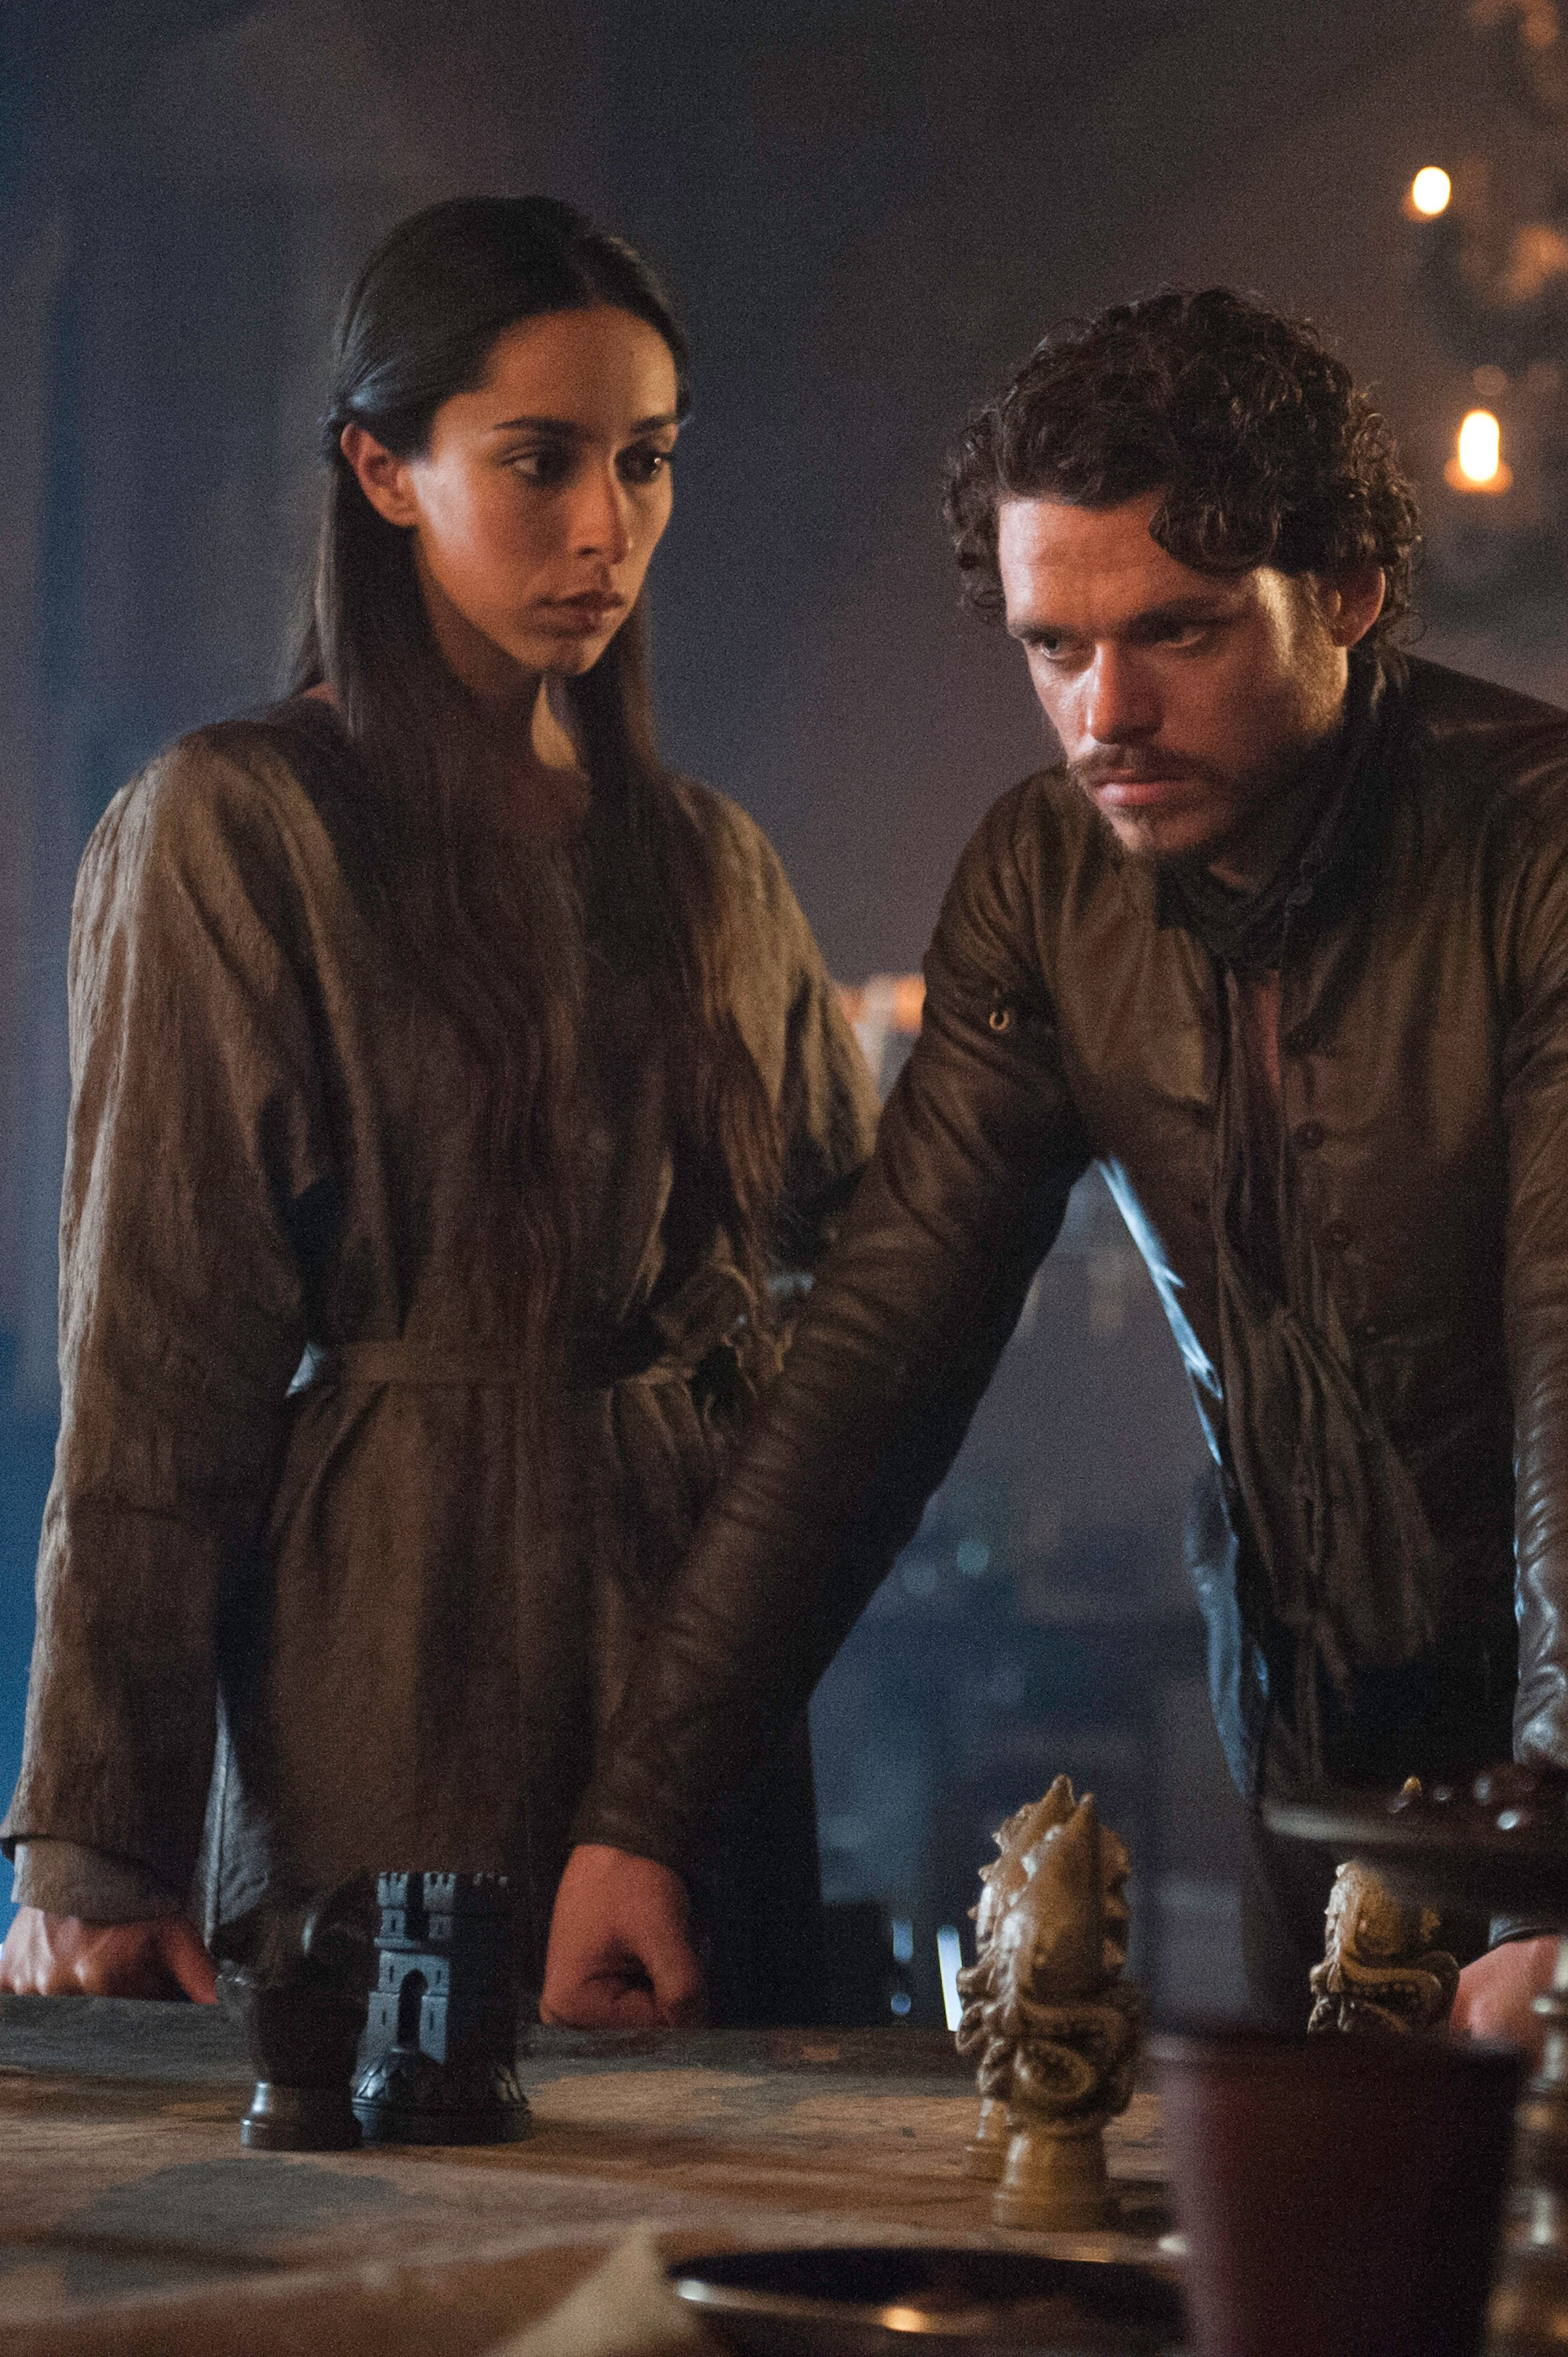 GAME OF THRONES Season 3 Images | Collider